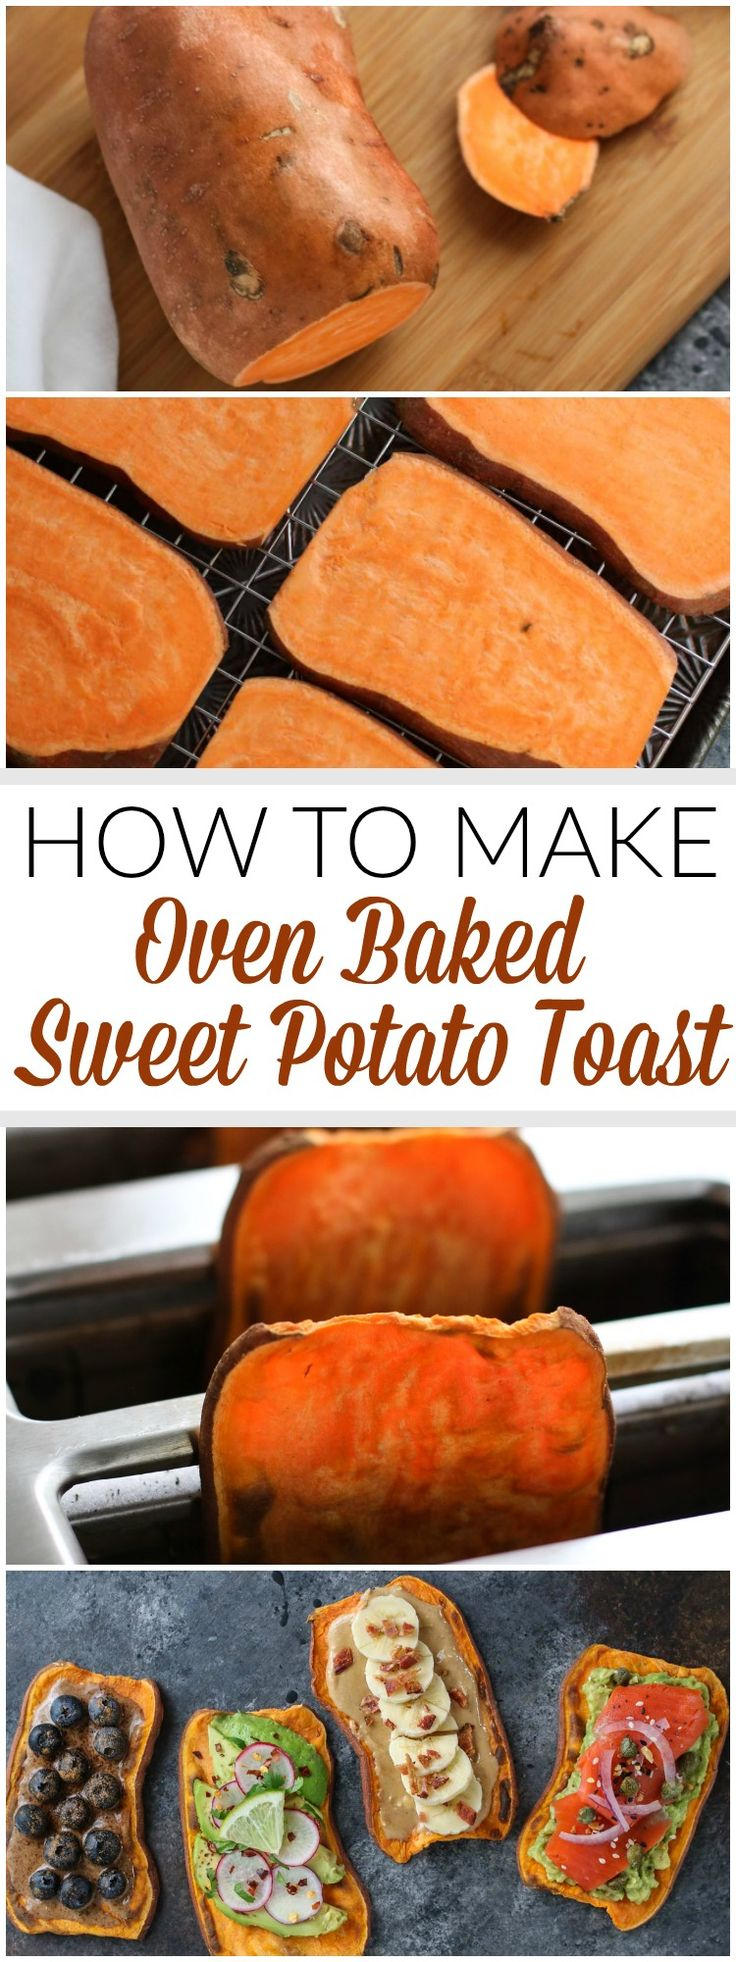 A step-by-step photo tutorial showing how to make oven baked Sweet Potato Toast. A big-batch method for sweet potato toast that's